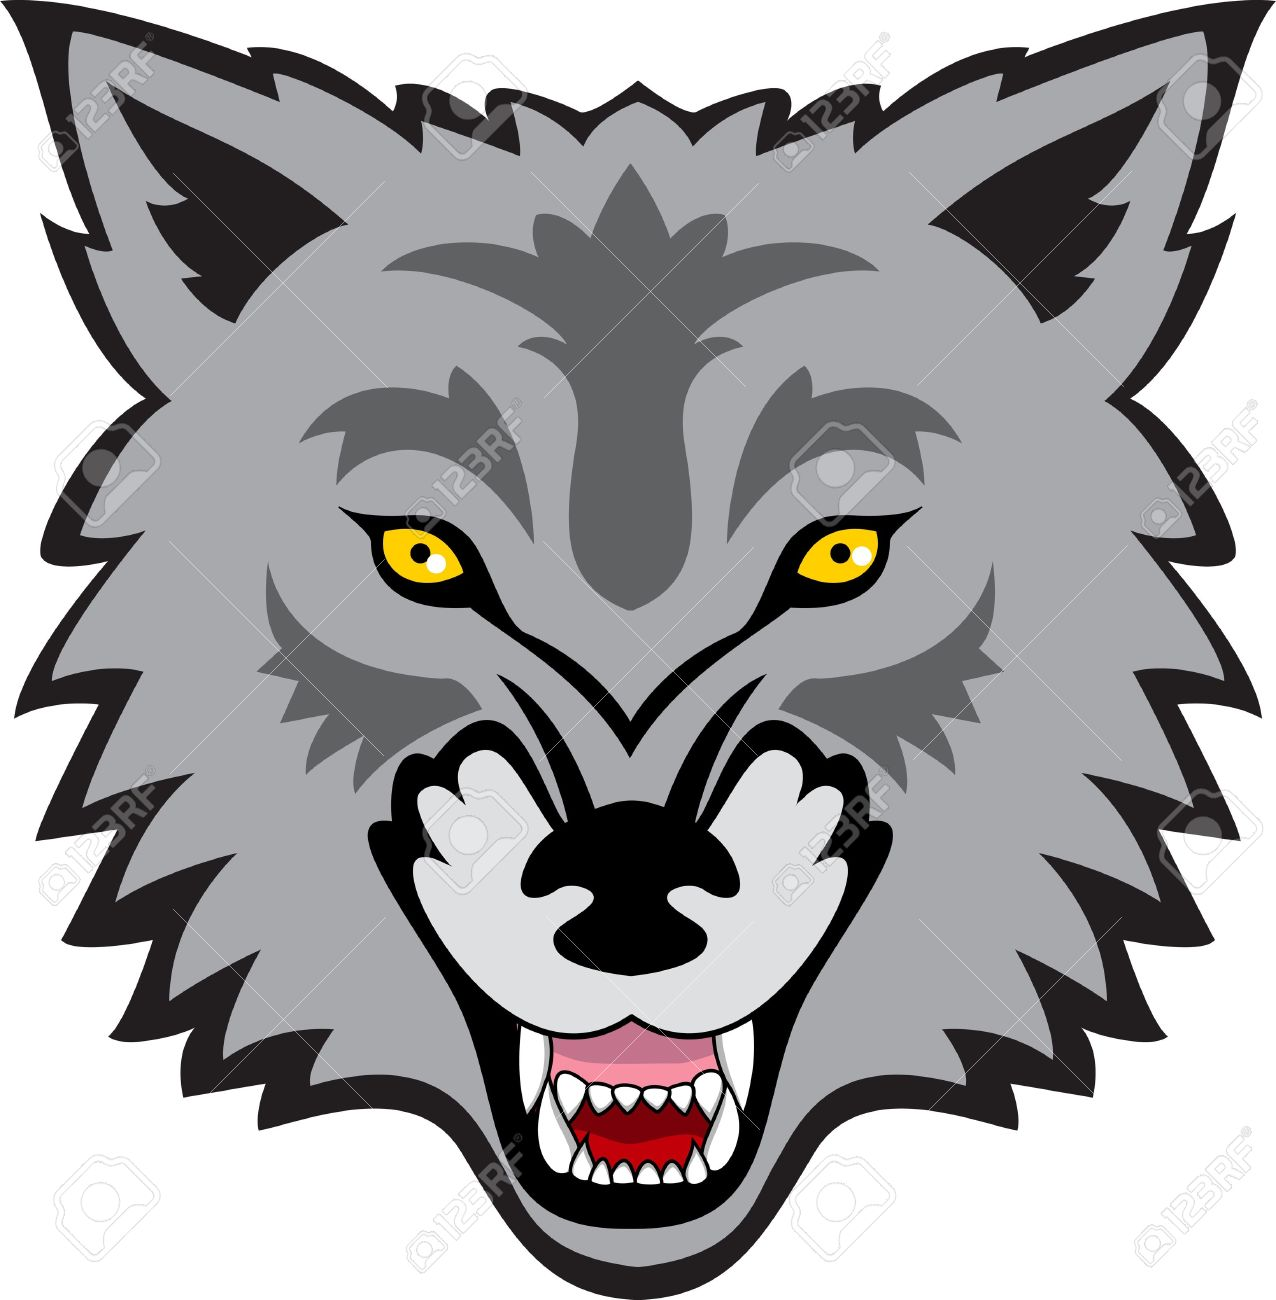 Clipart wolf face.